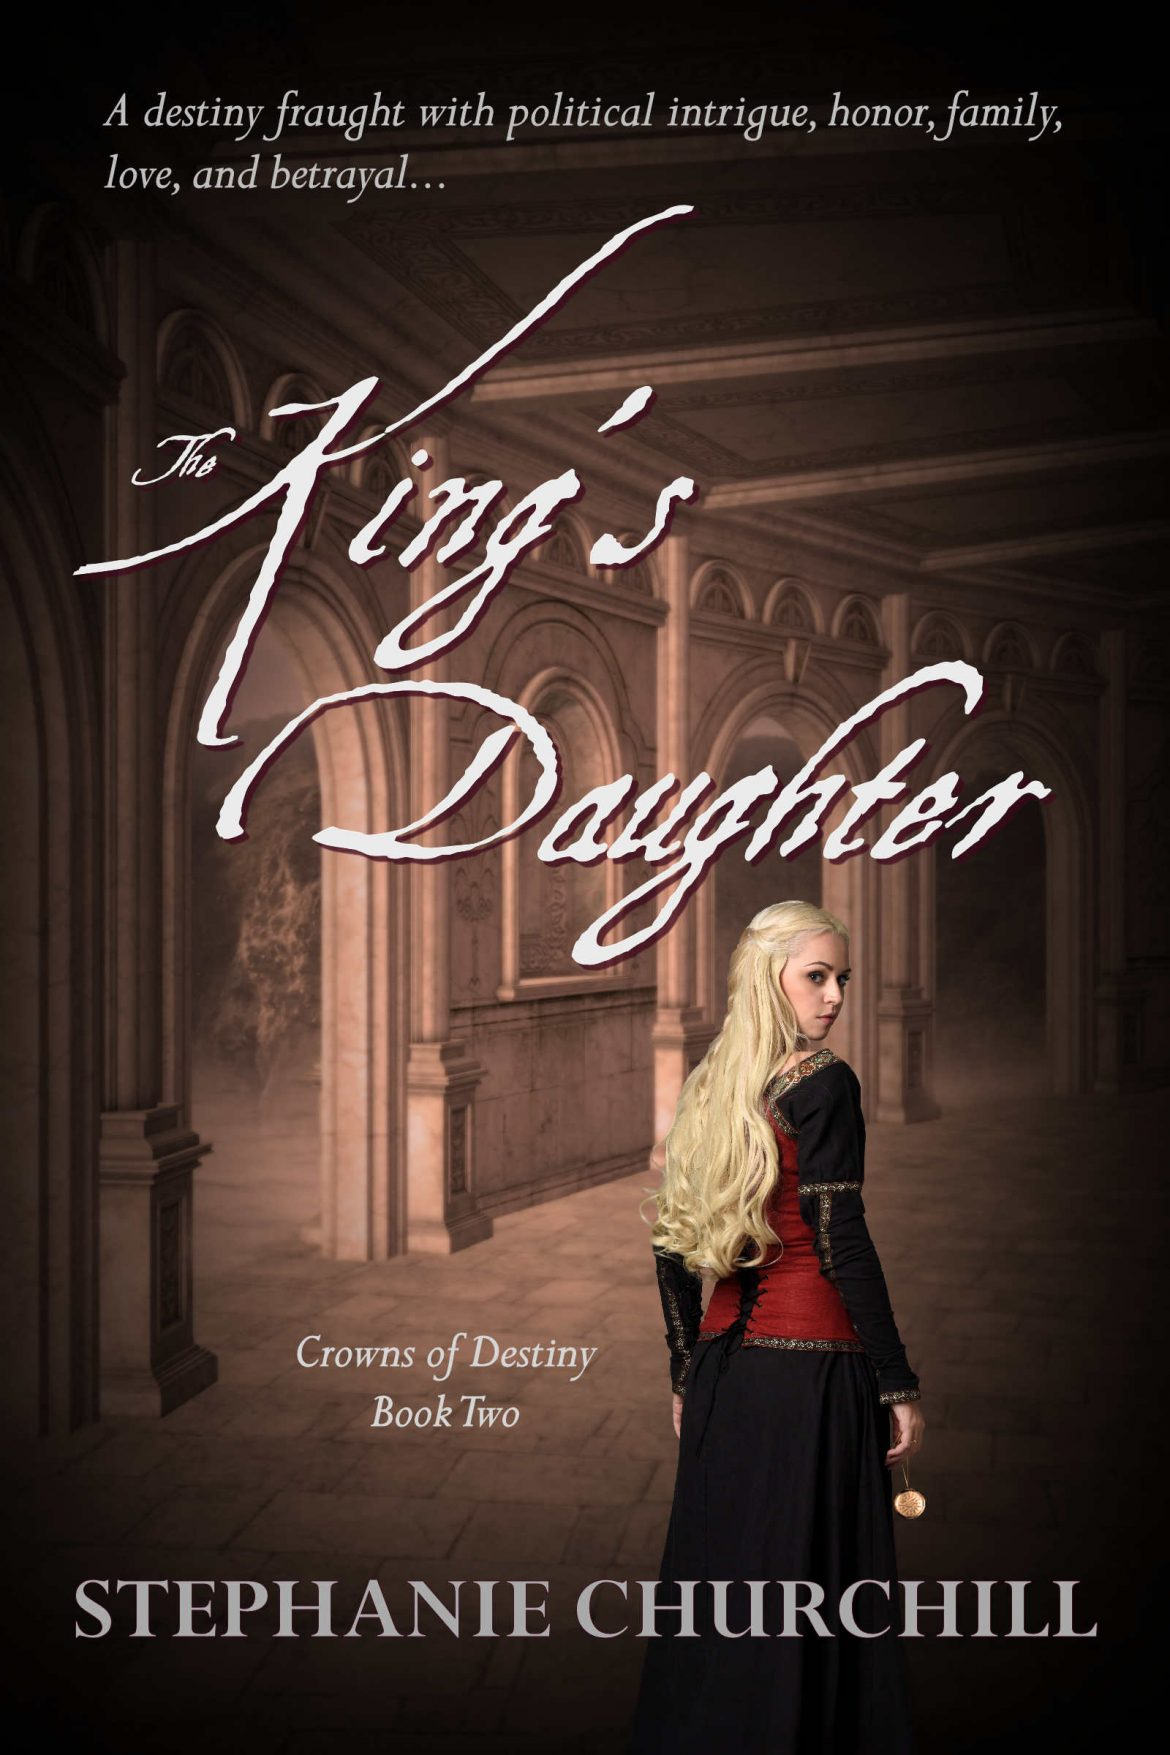 Thoughts on Writing The King's Daughter